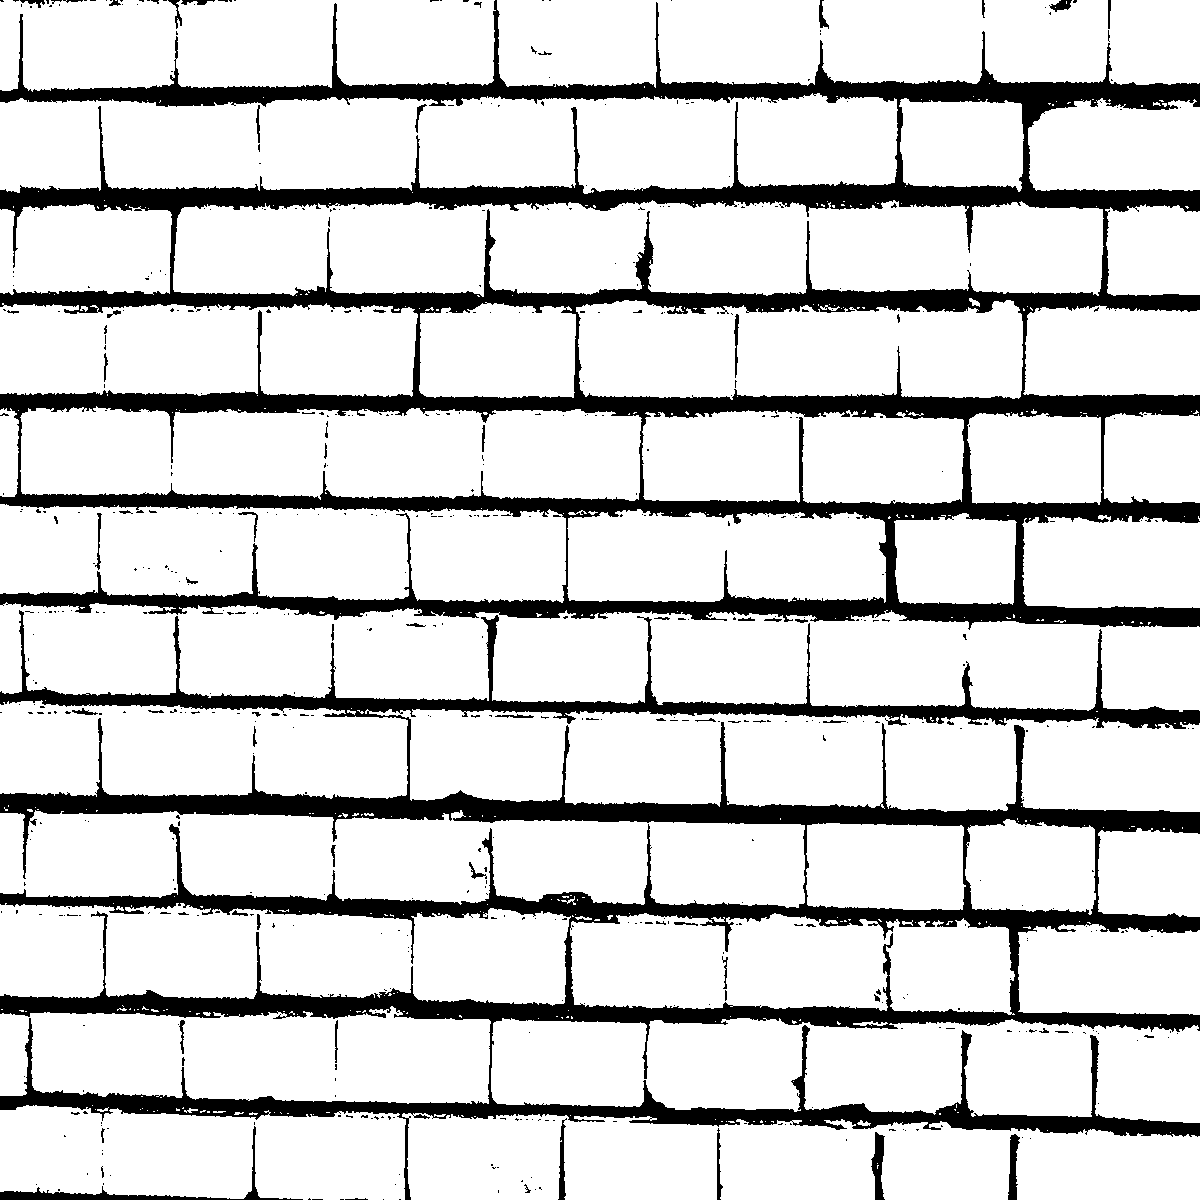 Brick Wall in Black and White Textures (PNG) | OnlyGFX.com